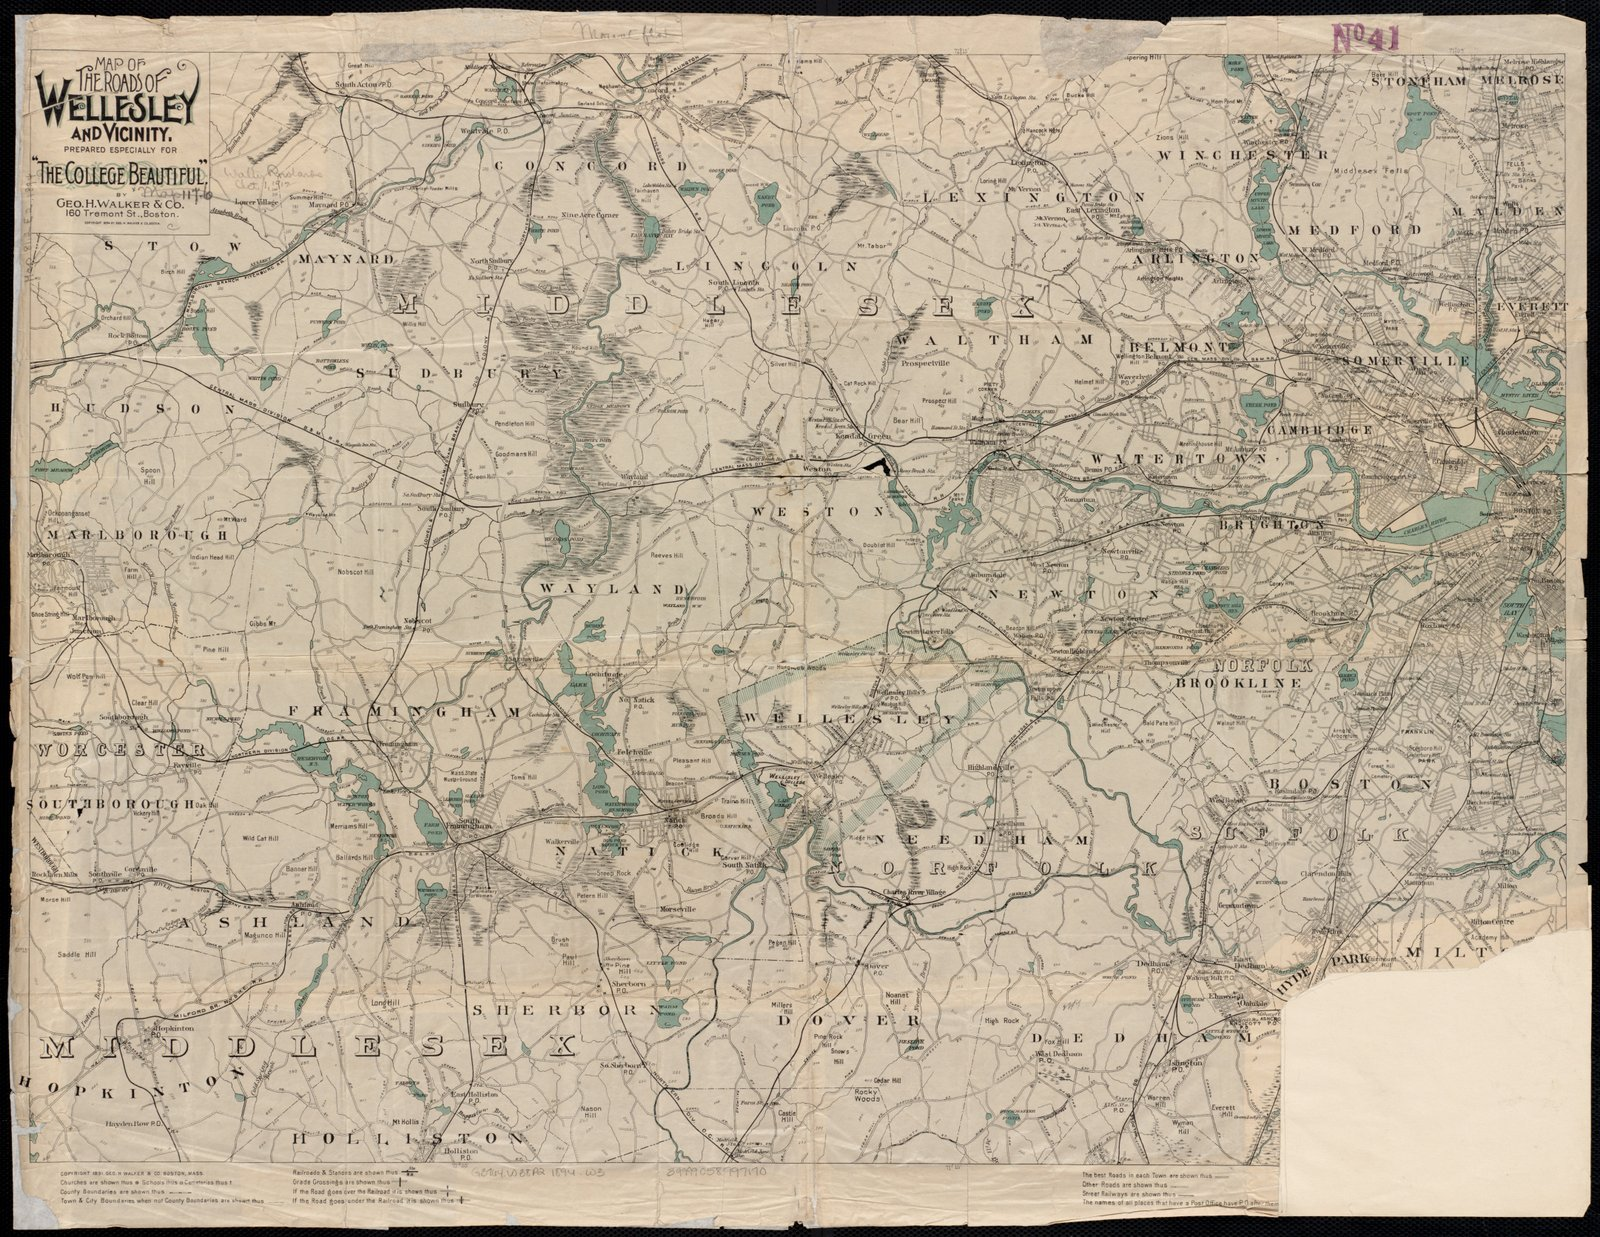 Historic Map | ca. 1894 Map of the roads of Wellesley and vicinity | Antique Vintage Reproduction